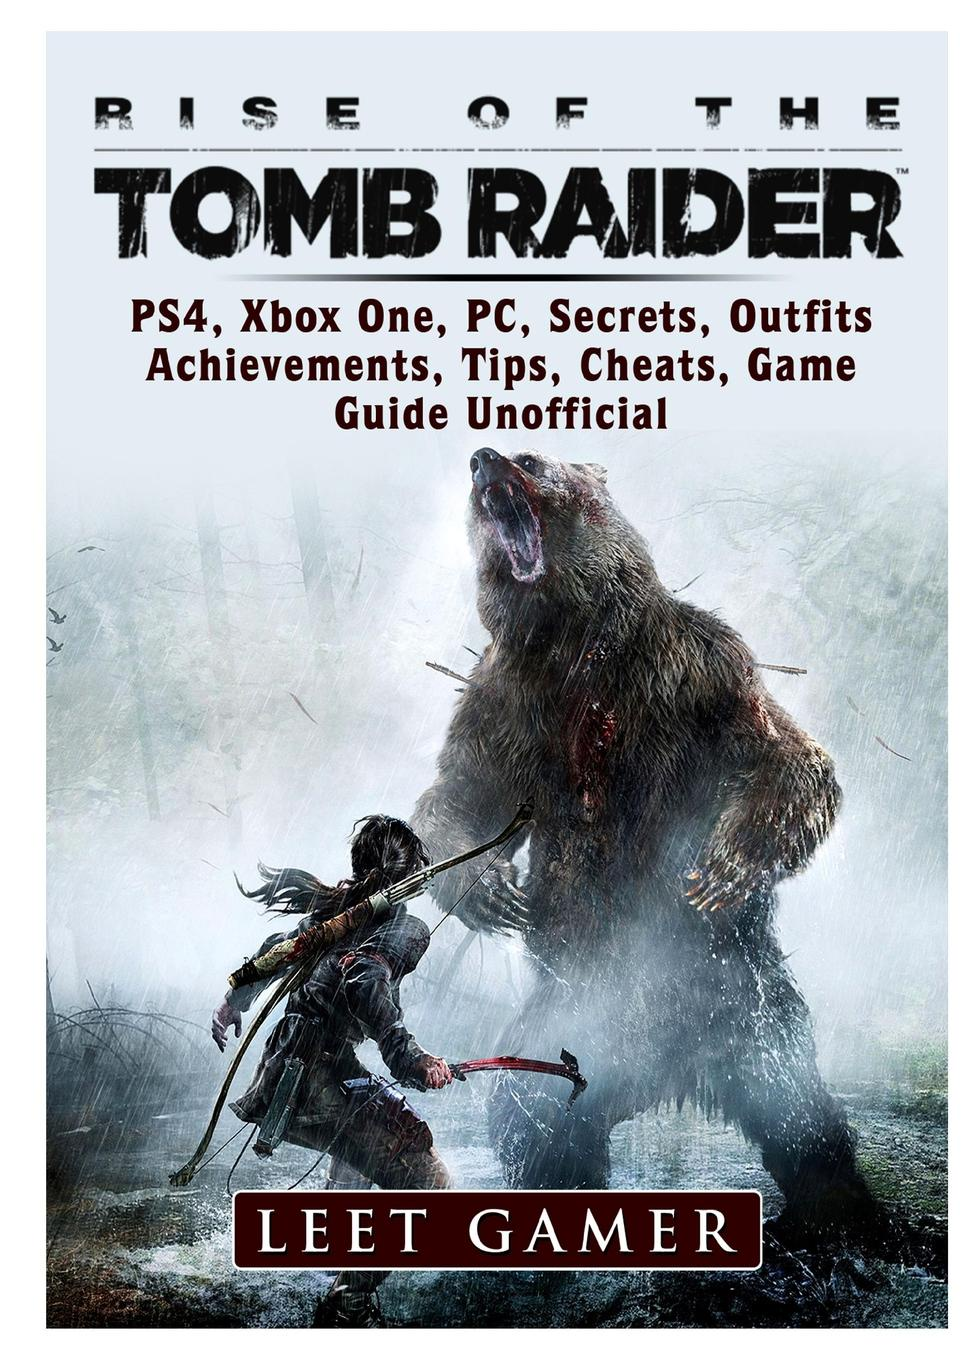 Leet Gamer Rise of The Tomb Raider, PS4, Xbox One, PC, Secrets, Outfits, Achievements, Tips, Cheats, Game Guide Unofficial advanced game controller for gamecube ngc and wii black